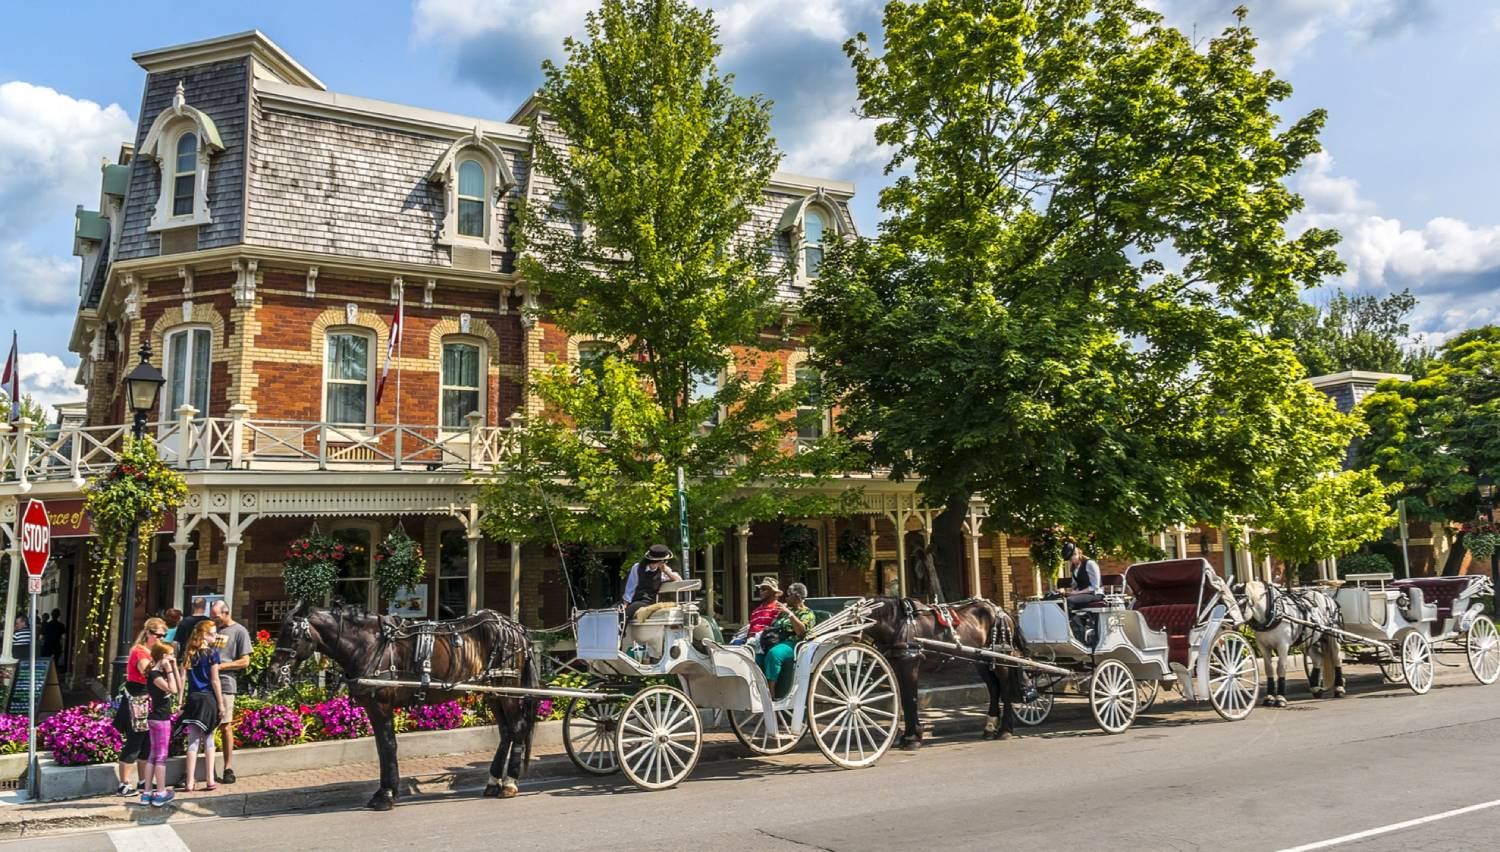 Niagara On The Lake - The Best Places To Visit In Canada